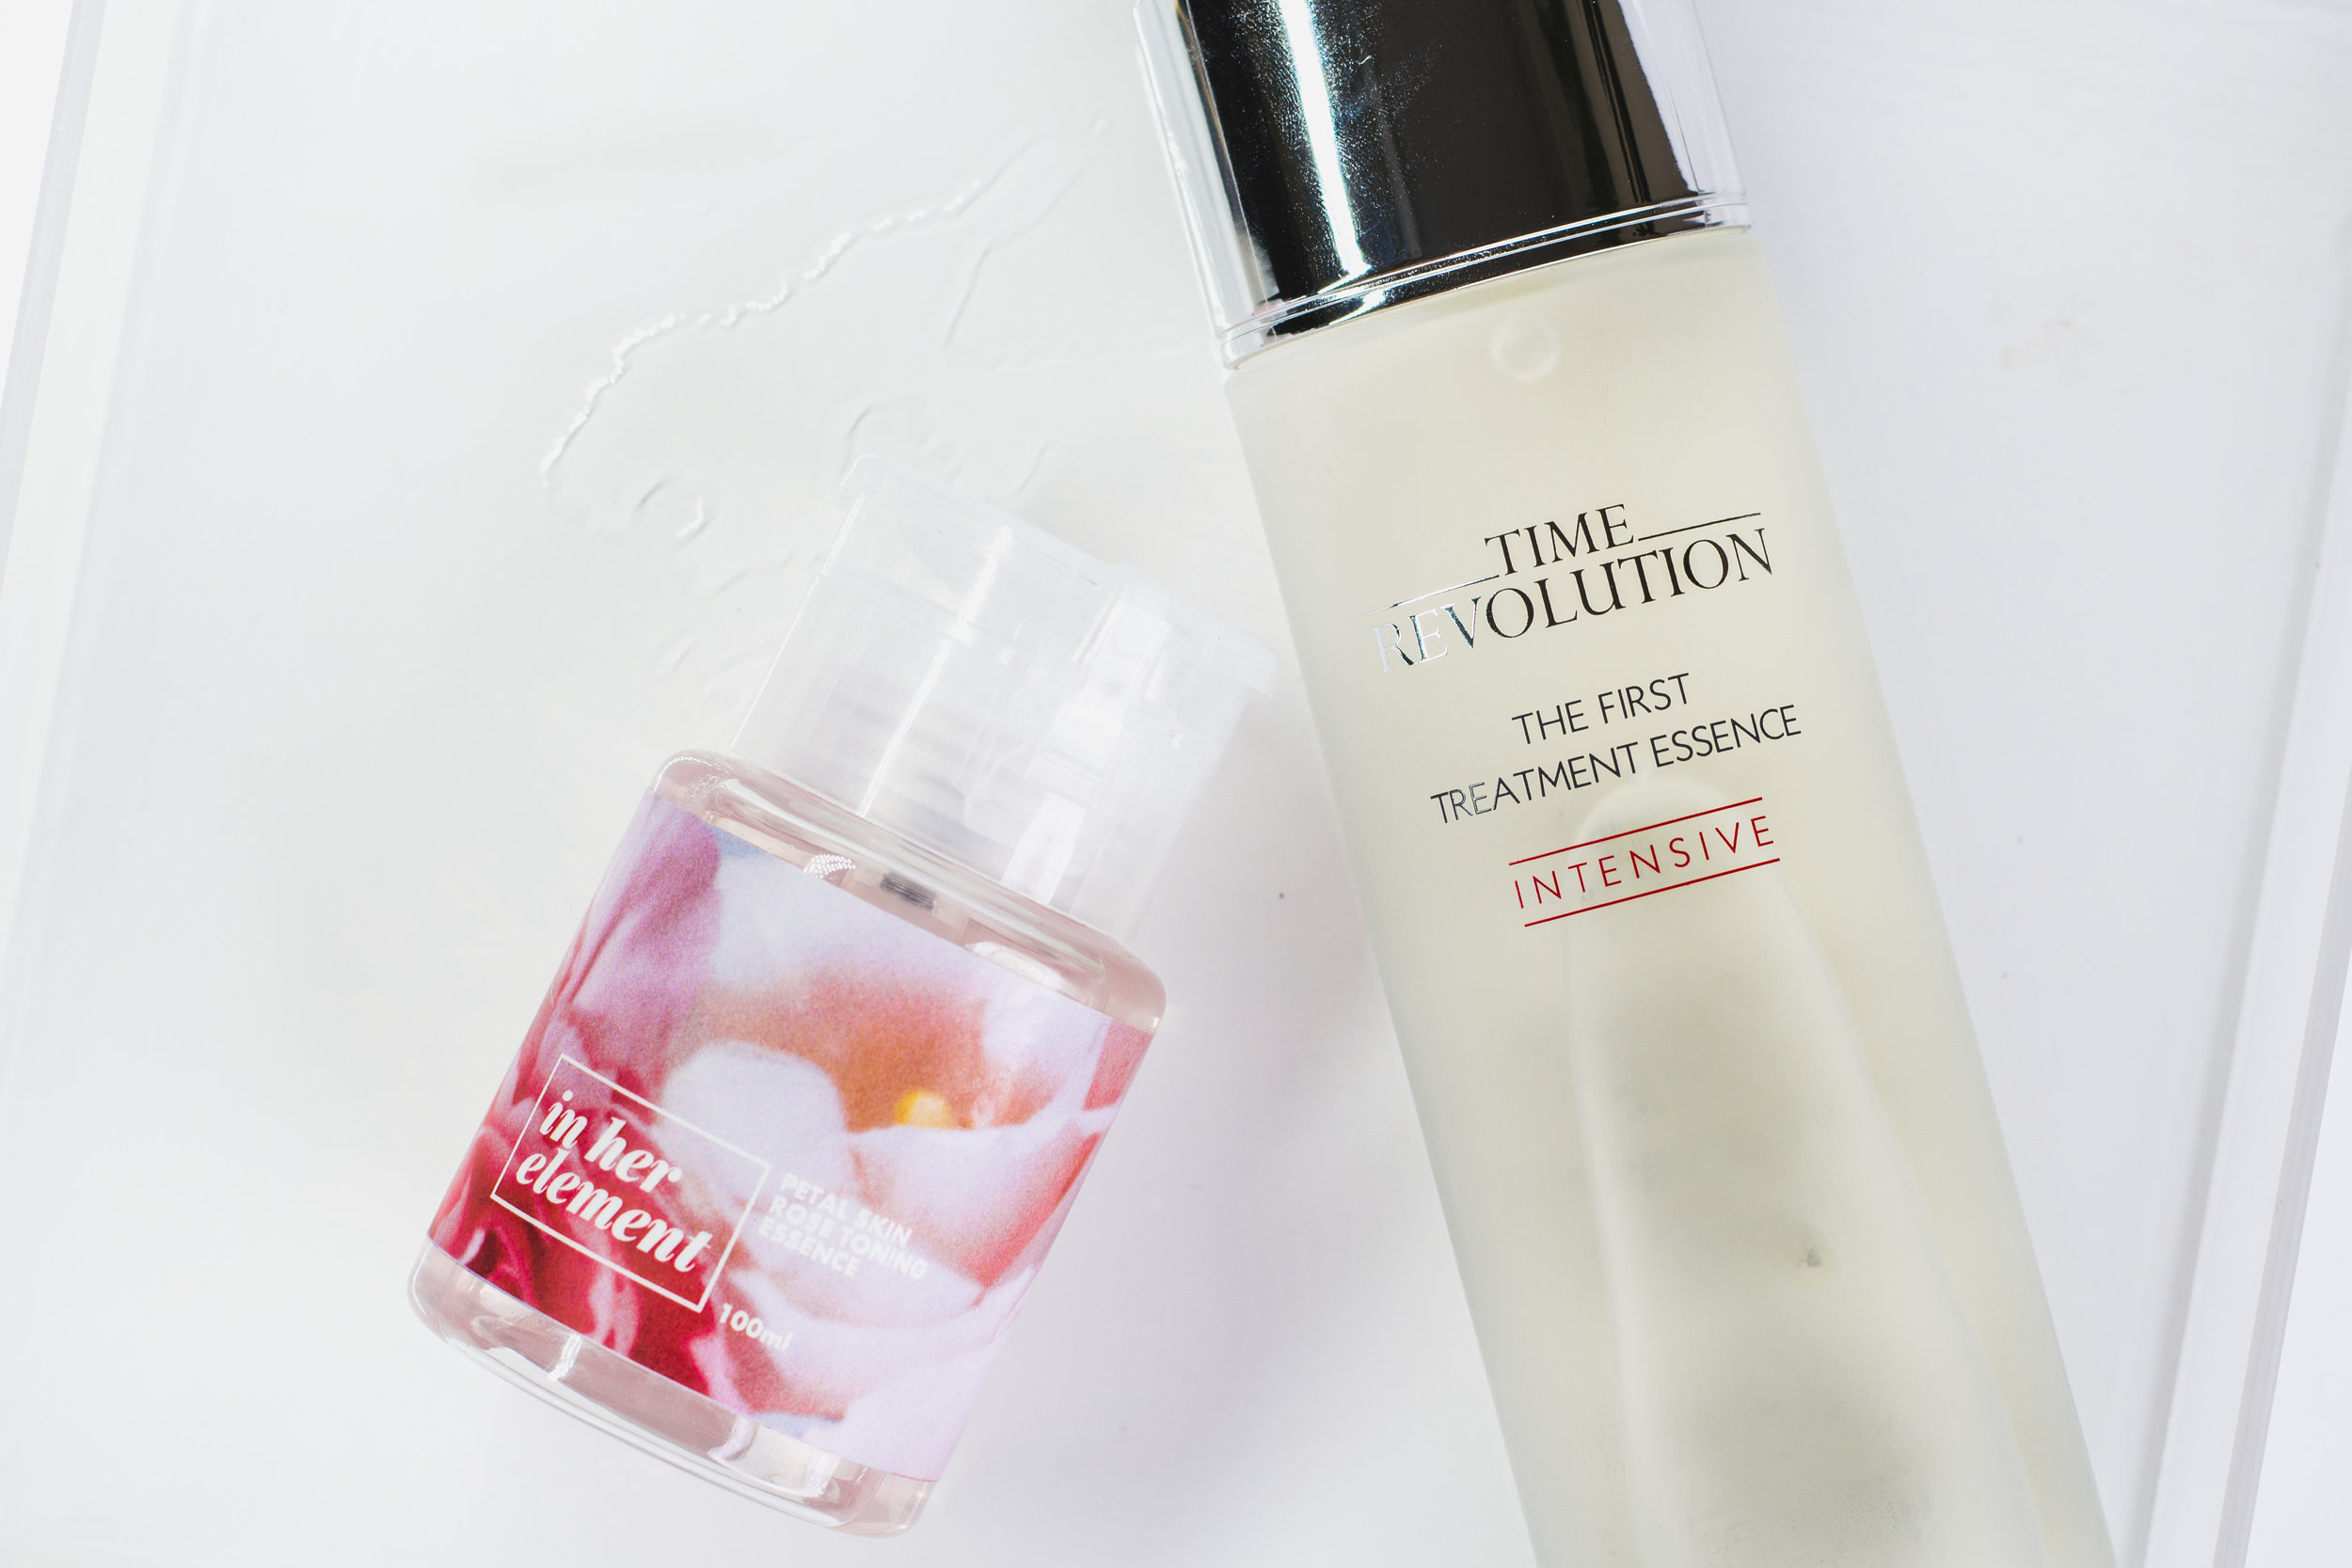 how-to-lessen-oily-skin_review-philippines_biore_in-her-element_missha_estee-lauder_human-heart-nature_olay_2019-28.jpg